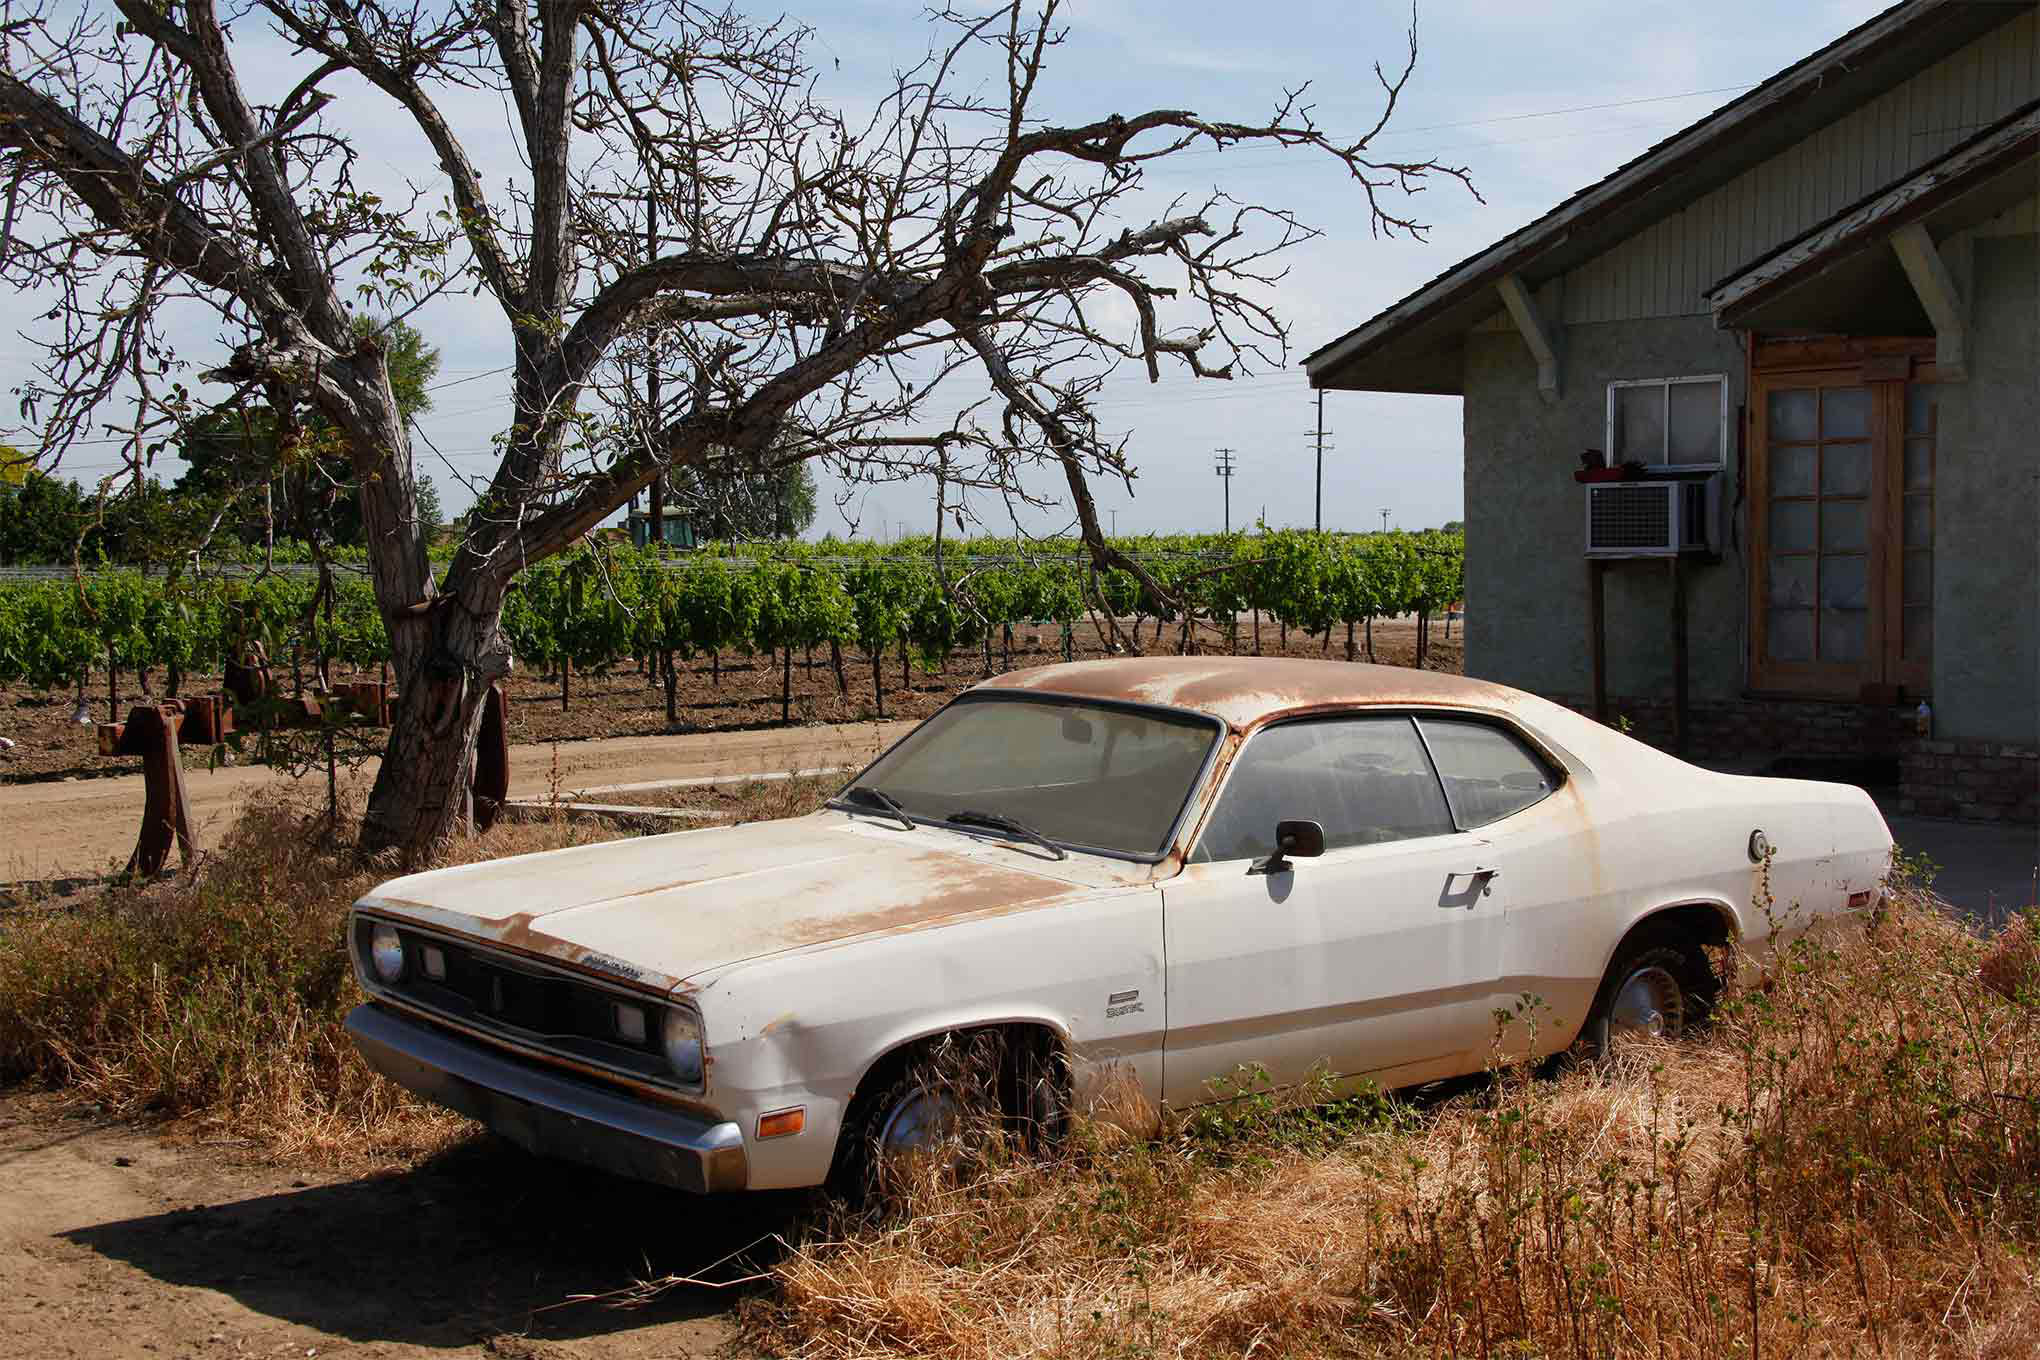 Before it became Roadkill's Crop Duster, this weather-beaten '70 Plymouth Duster languished on the grape farm belonging to contributor Steve Dulcich.